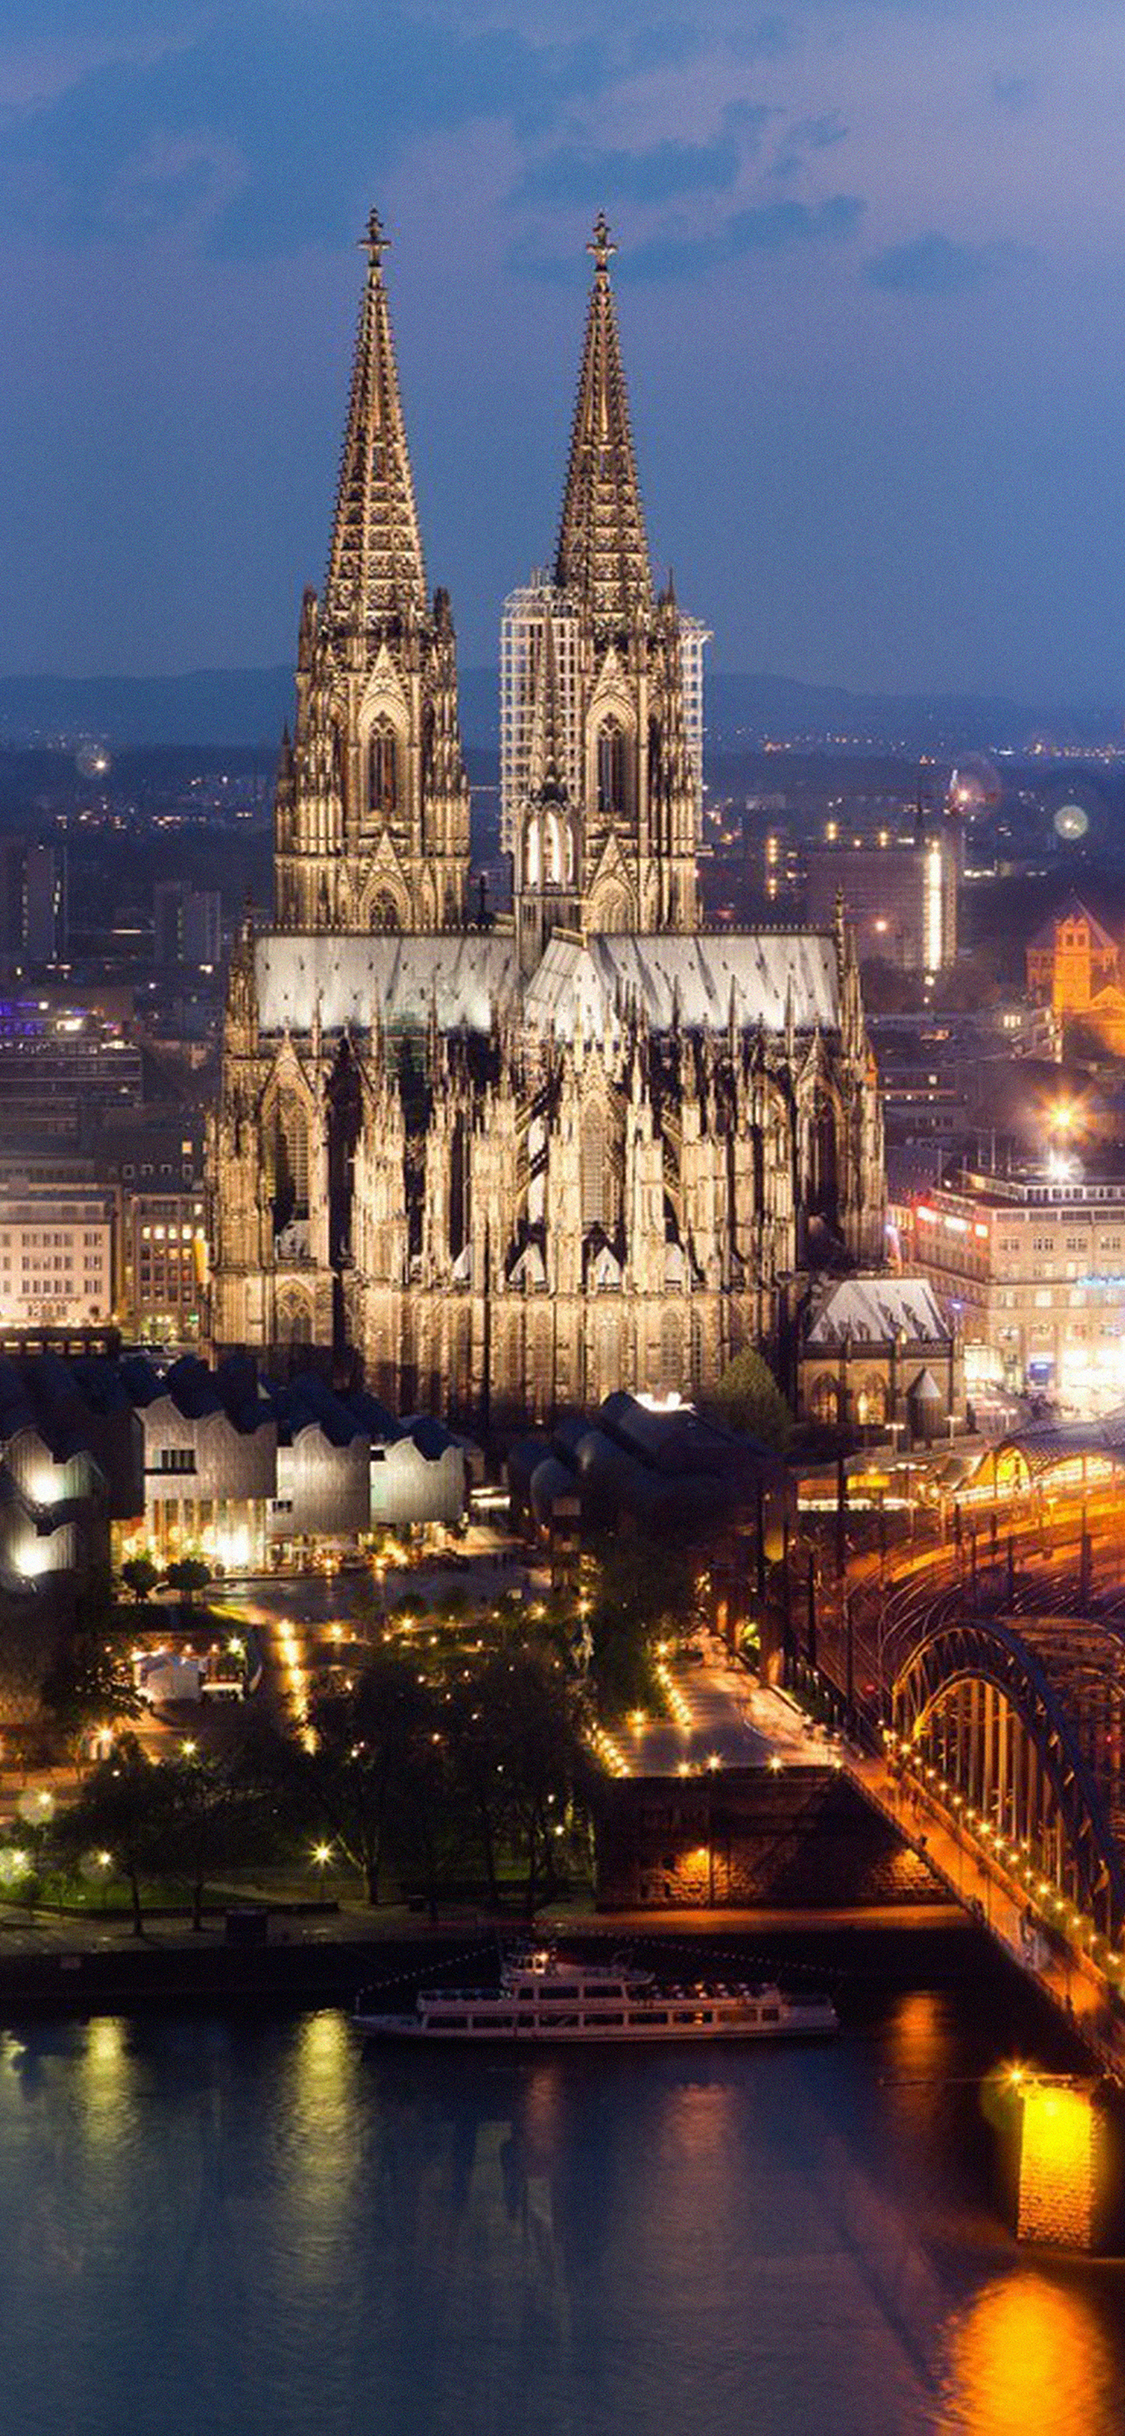 iPhoneXpapers.com-Apple-iPhone-wallpaper-mj20-cologne-cathedral-hohenzollern-bridge-spain-city